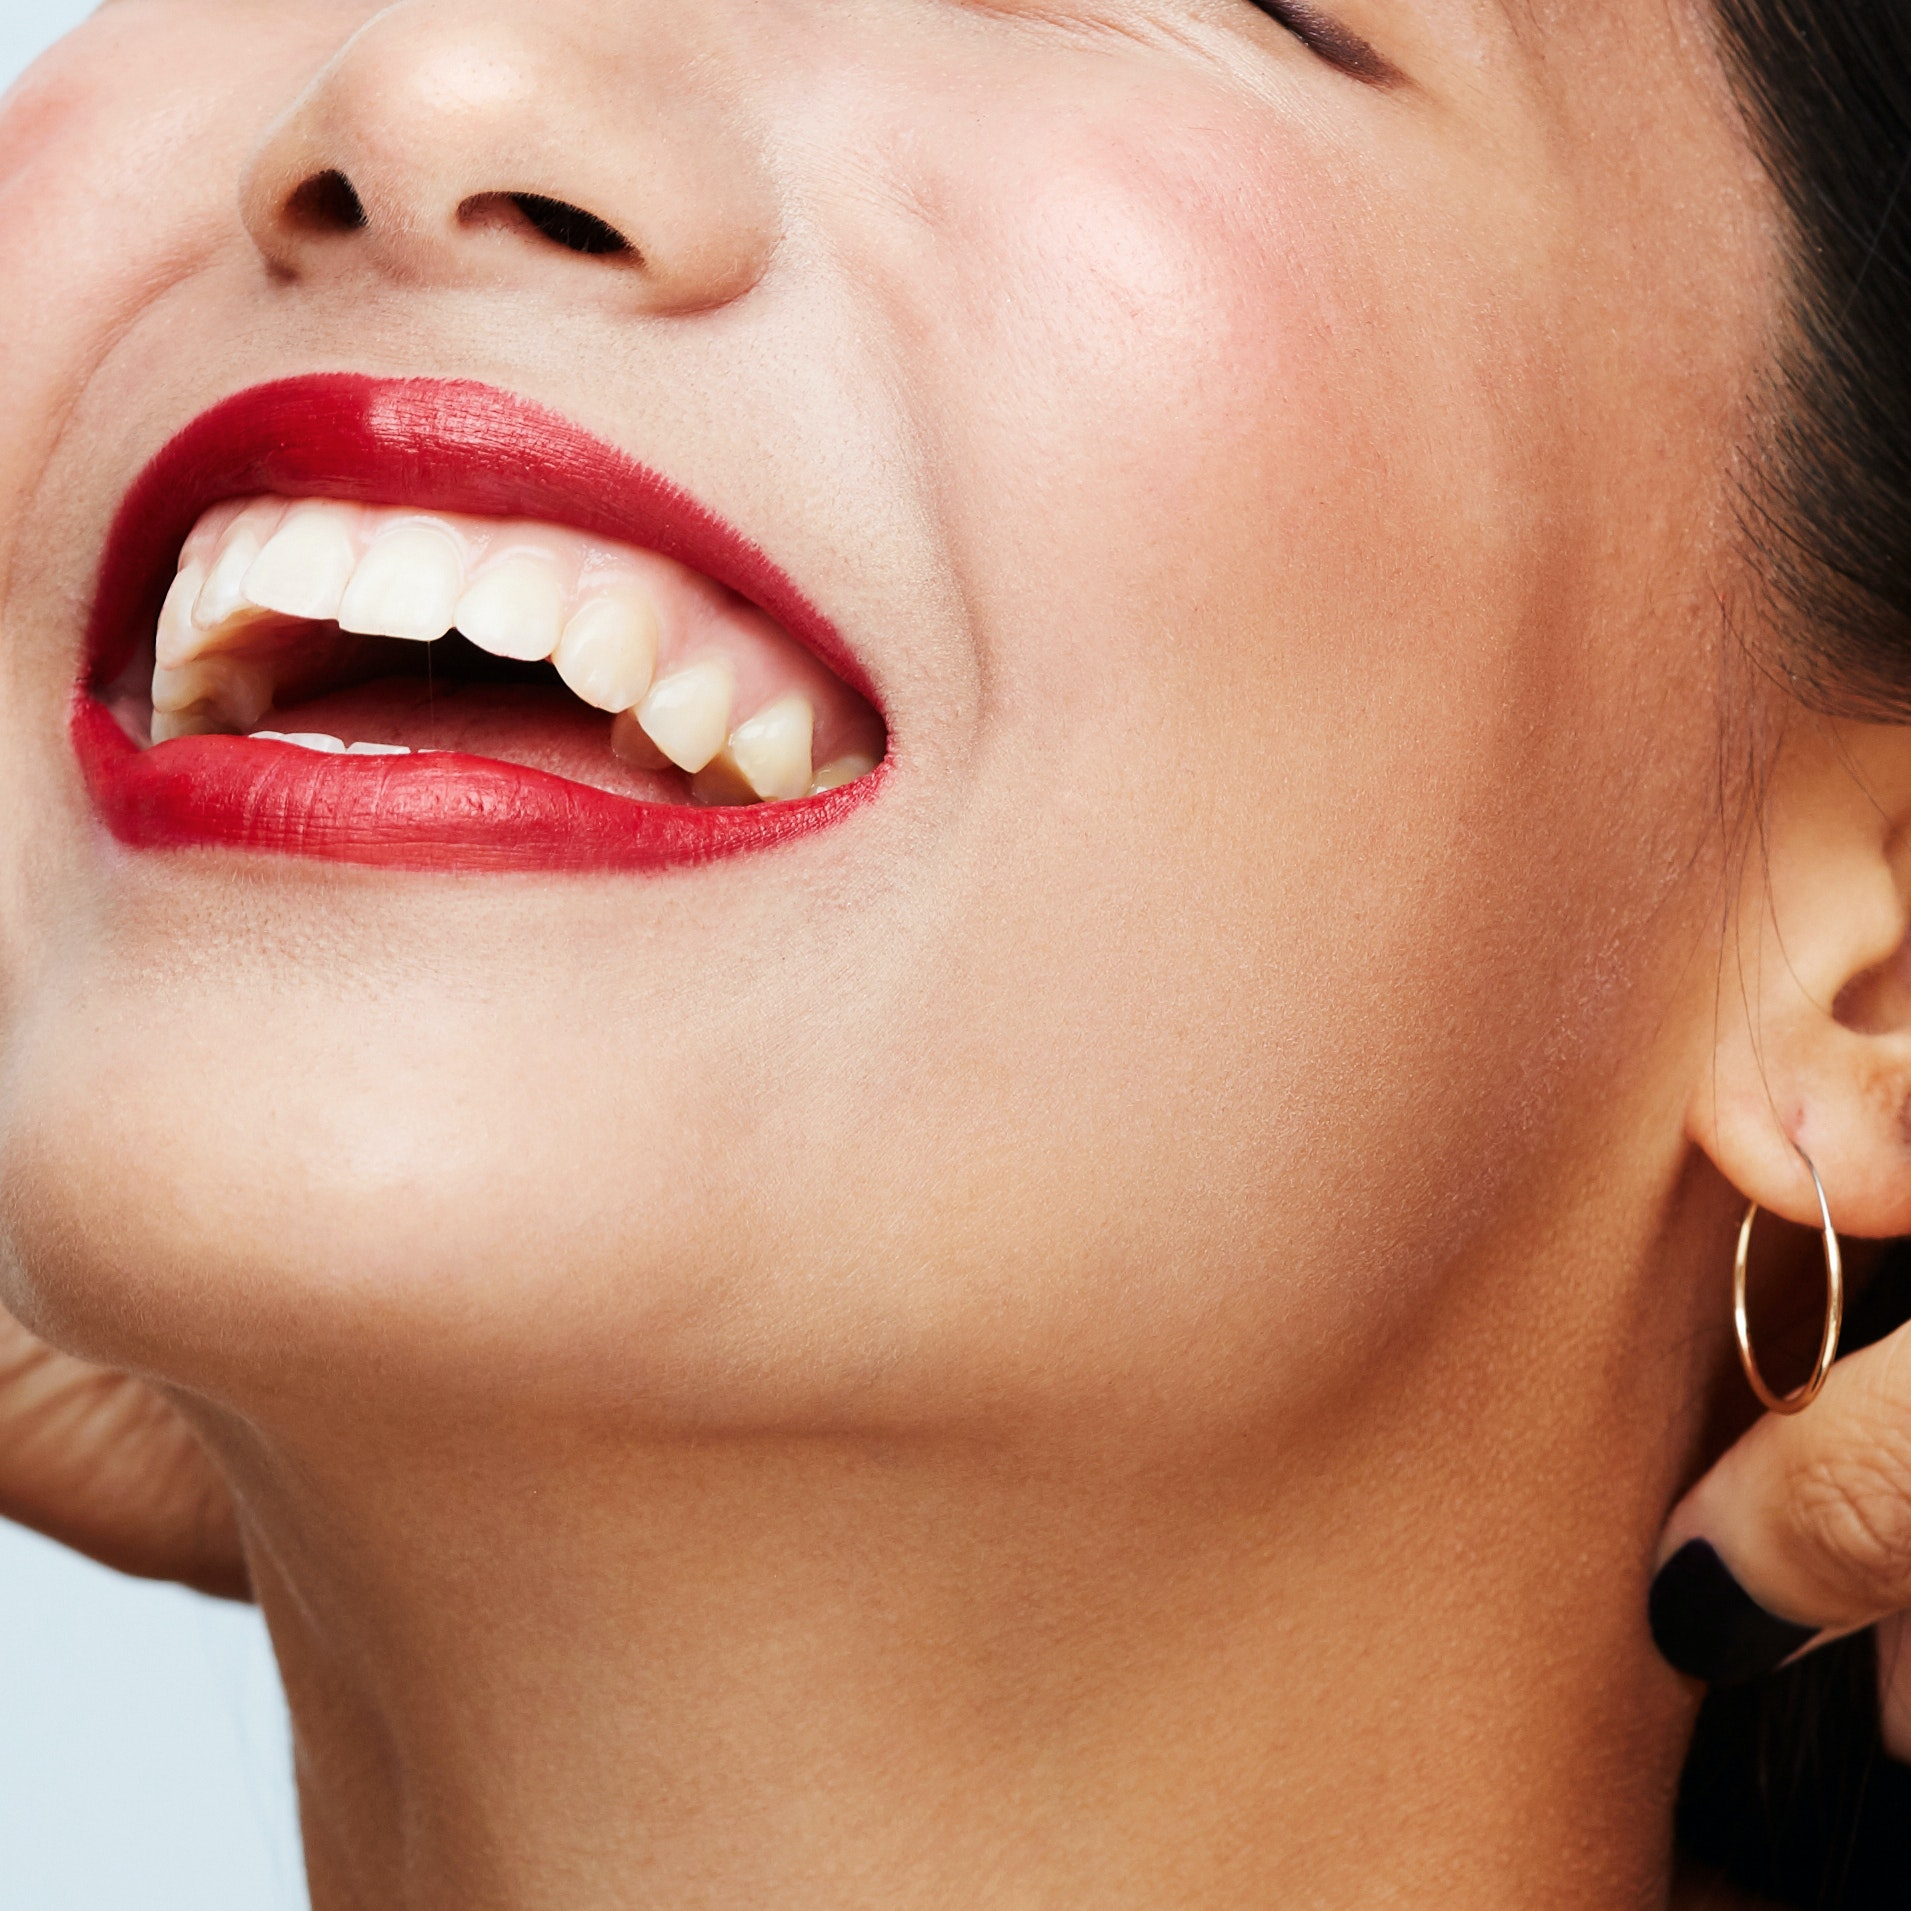 Get a Whiter Smile This Summer With These 6 Dentist-Approved Tips